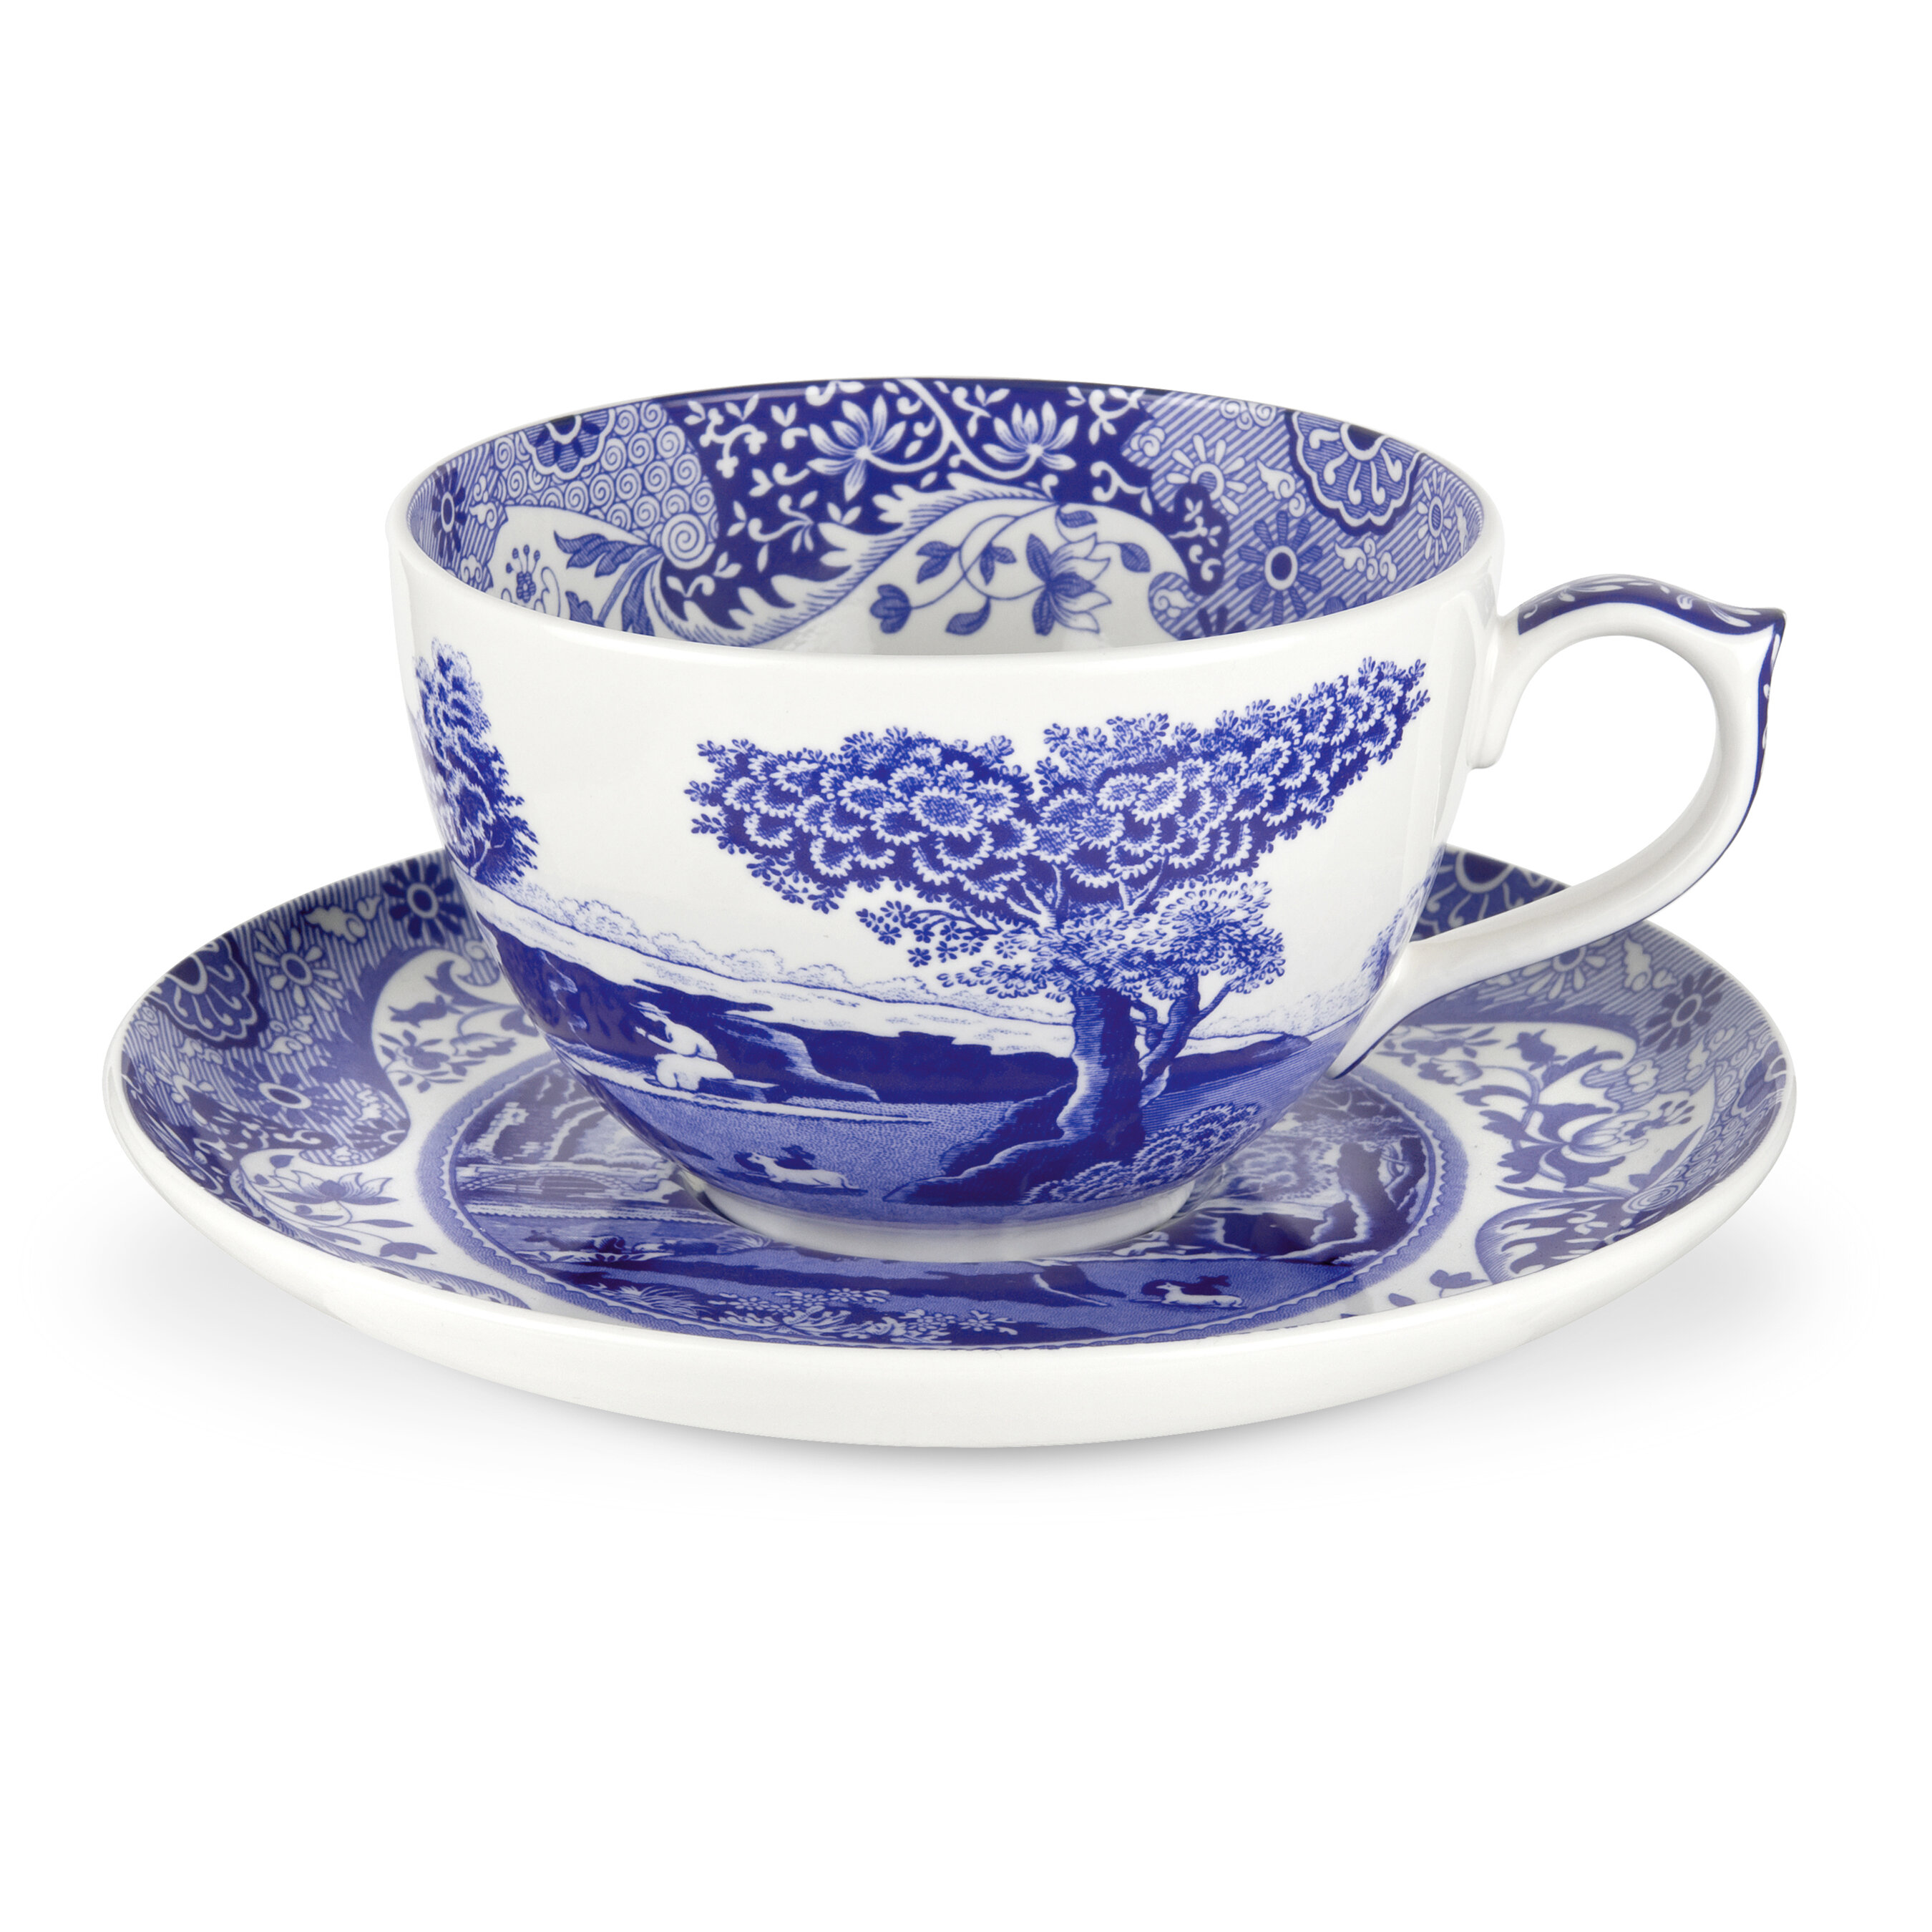 Small Footed Sherbet Cup; Porcelain Cup; Birds and Flowers Patterns; White and Blue Cup